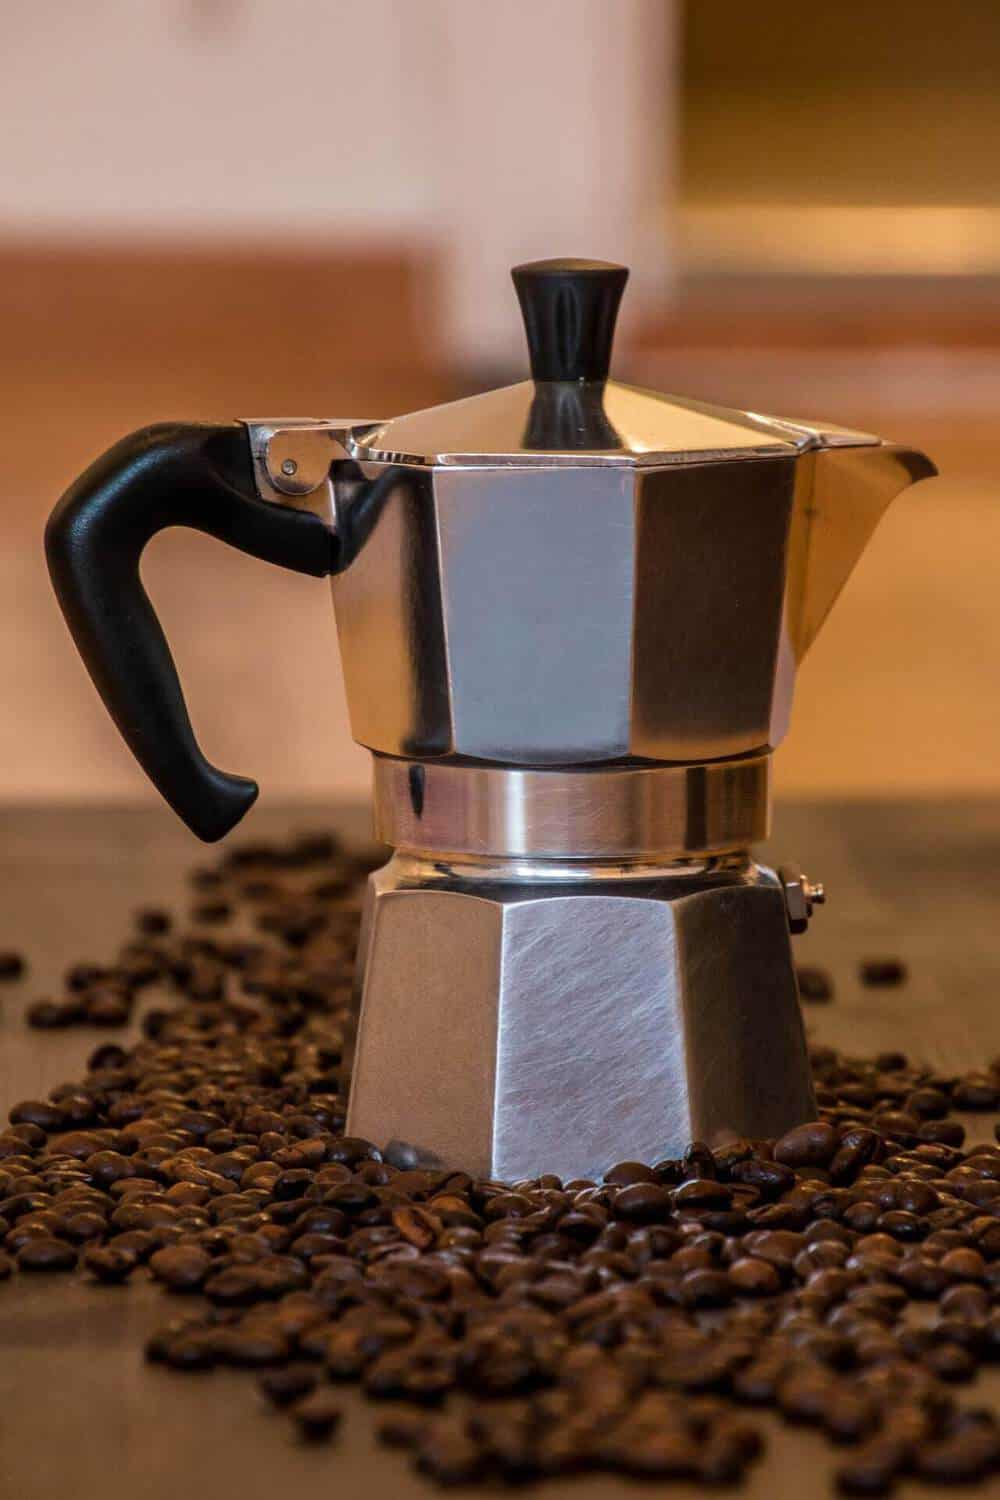 The moka pot